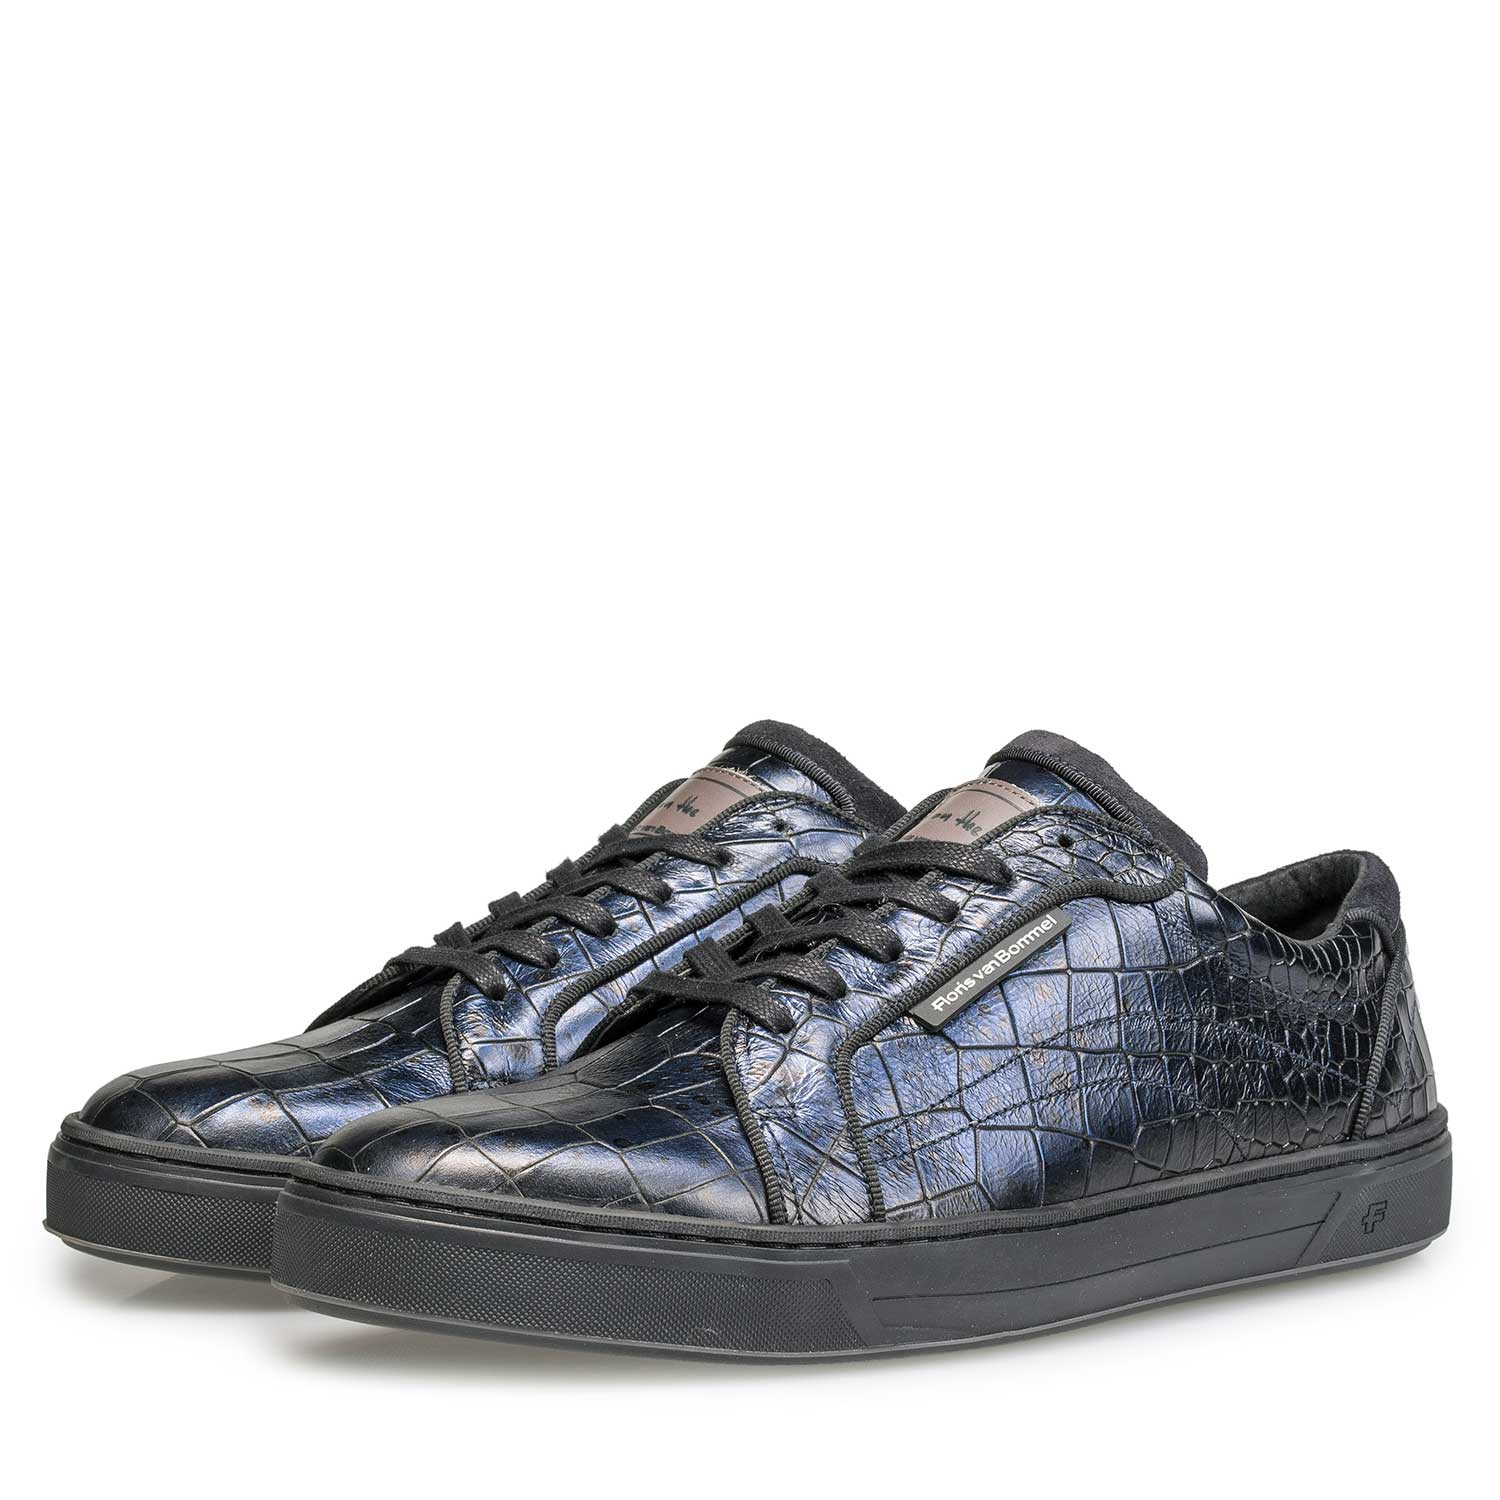 13214/04 - Blue leather sneaker with croco print